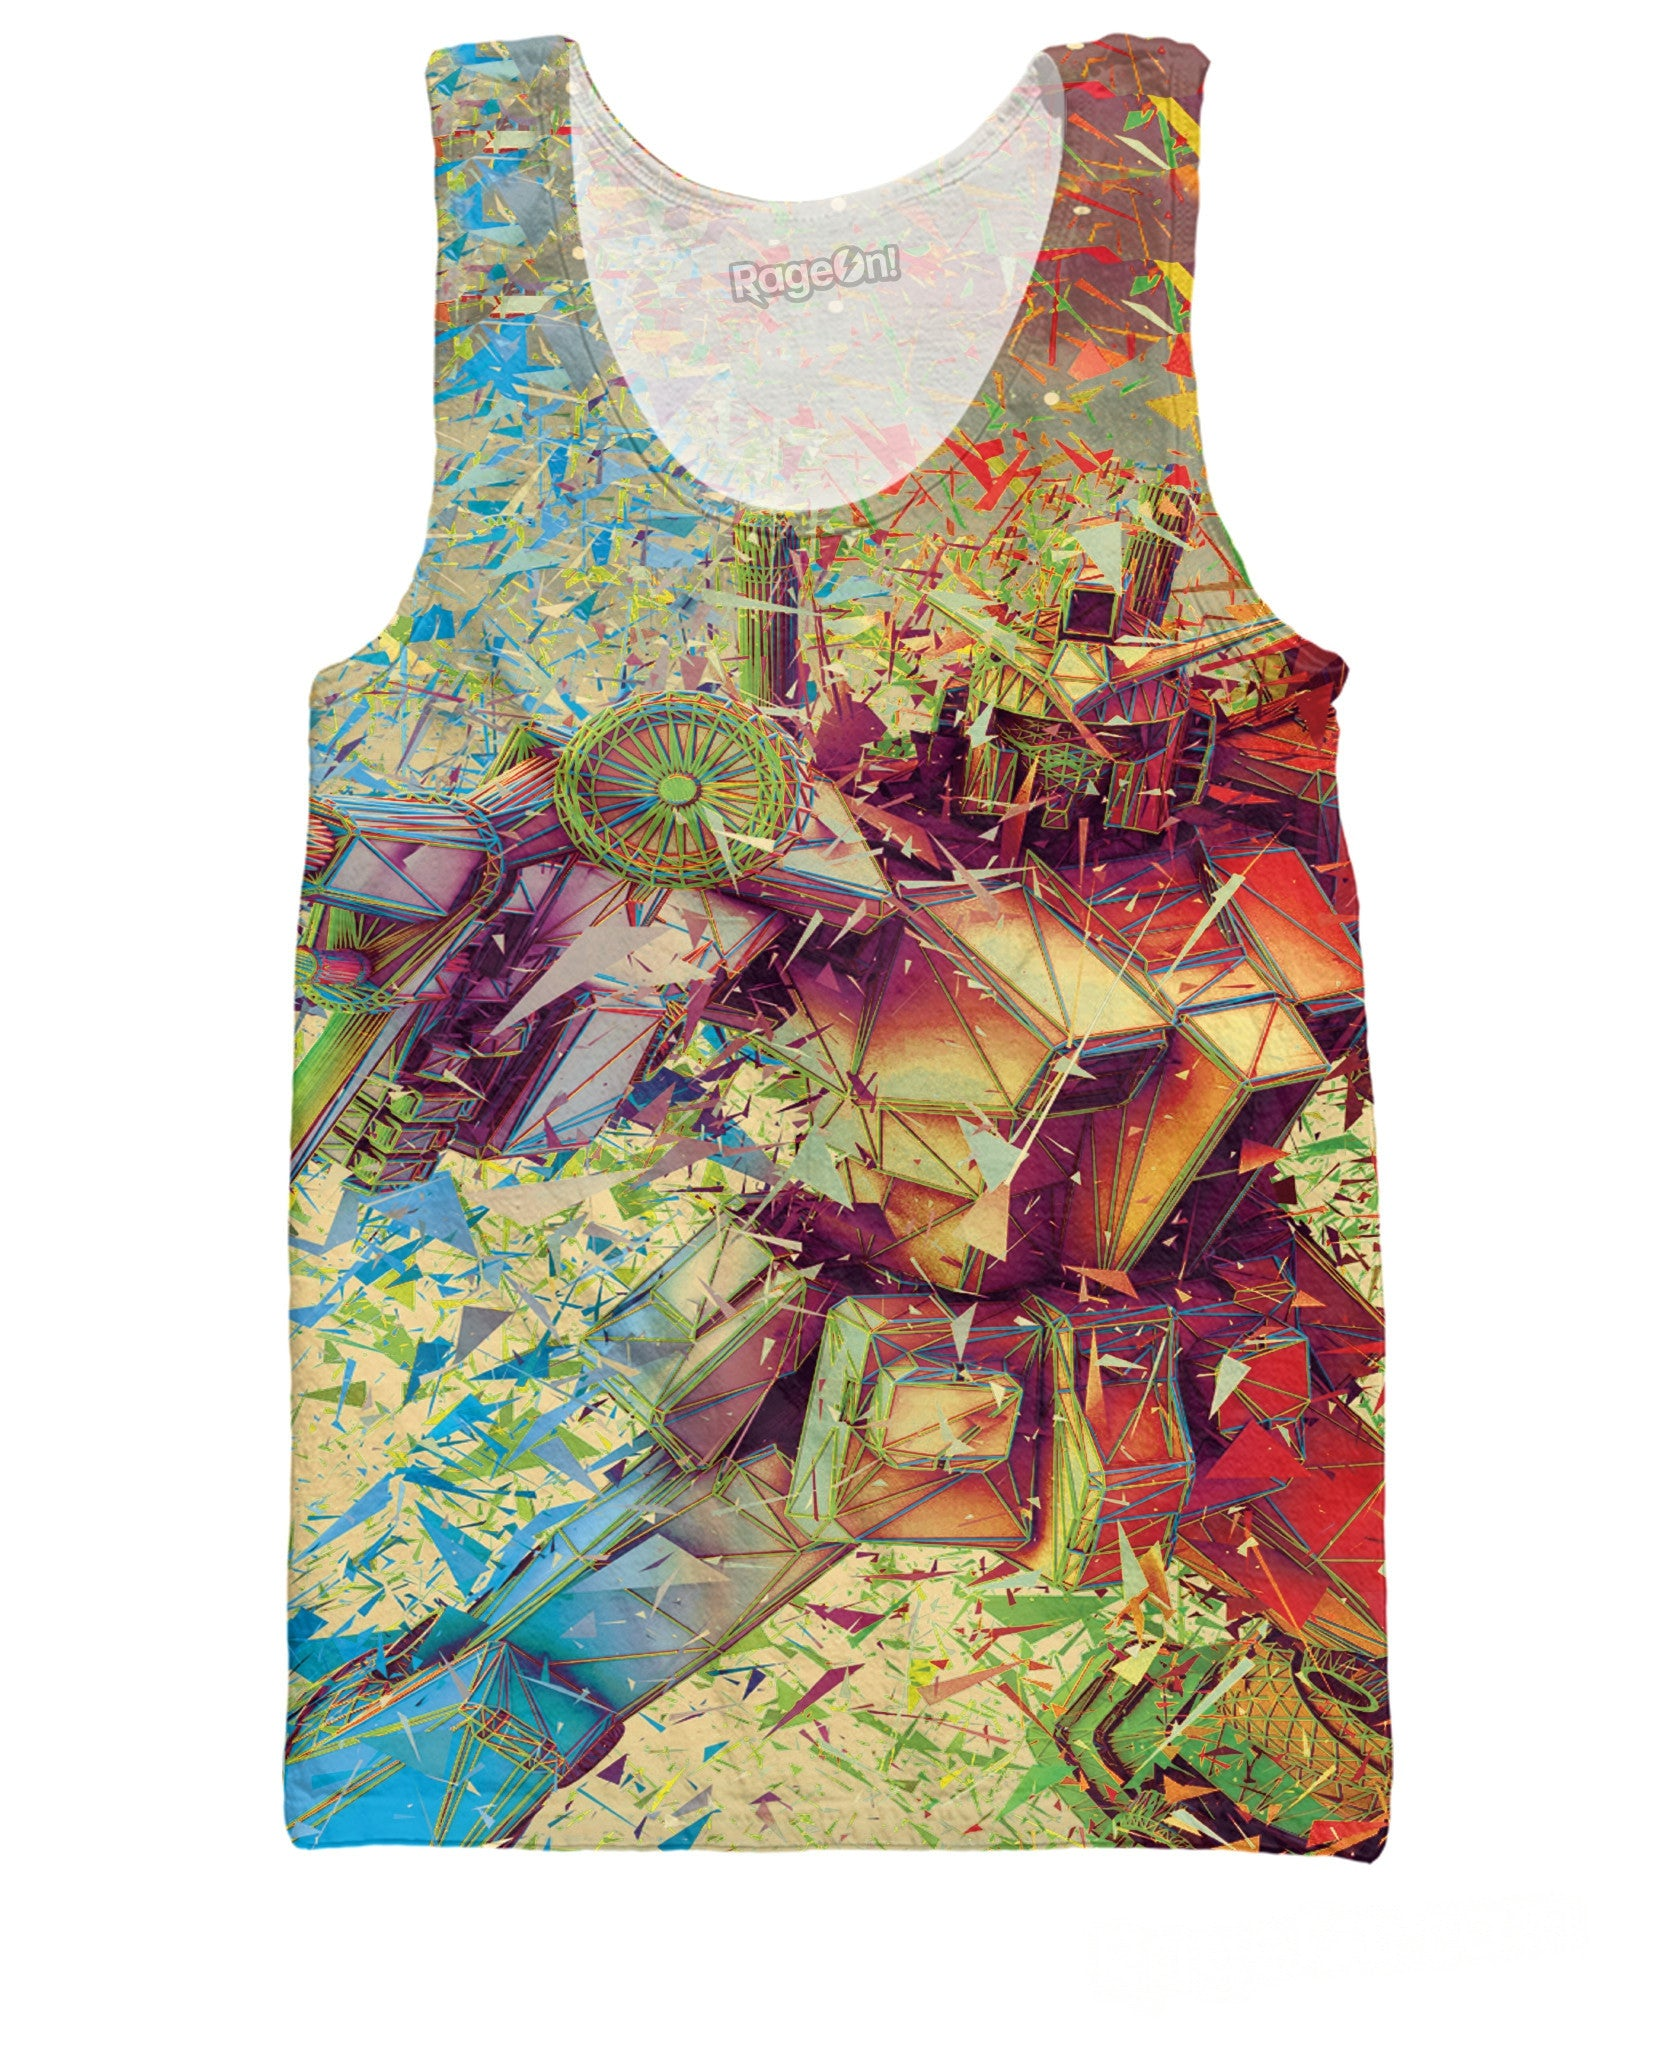 3D Transformers Limited Edition Red Tank Top